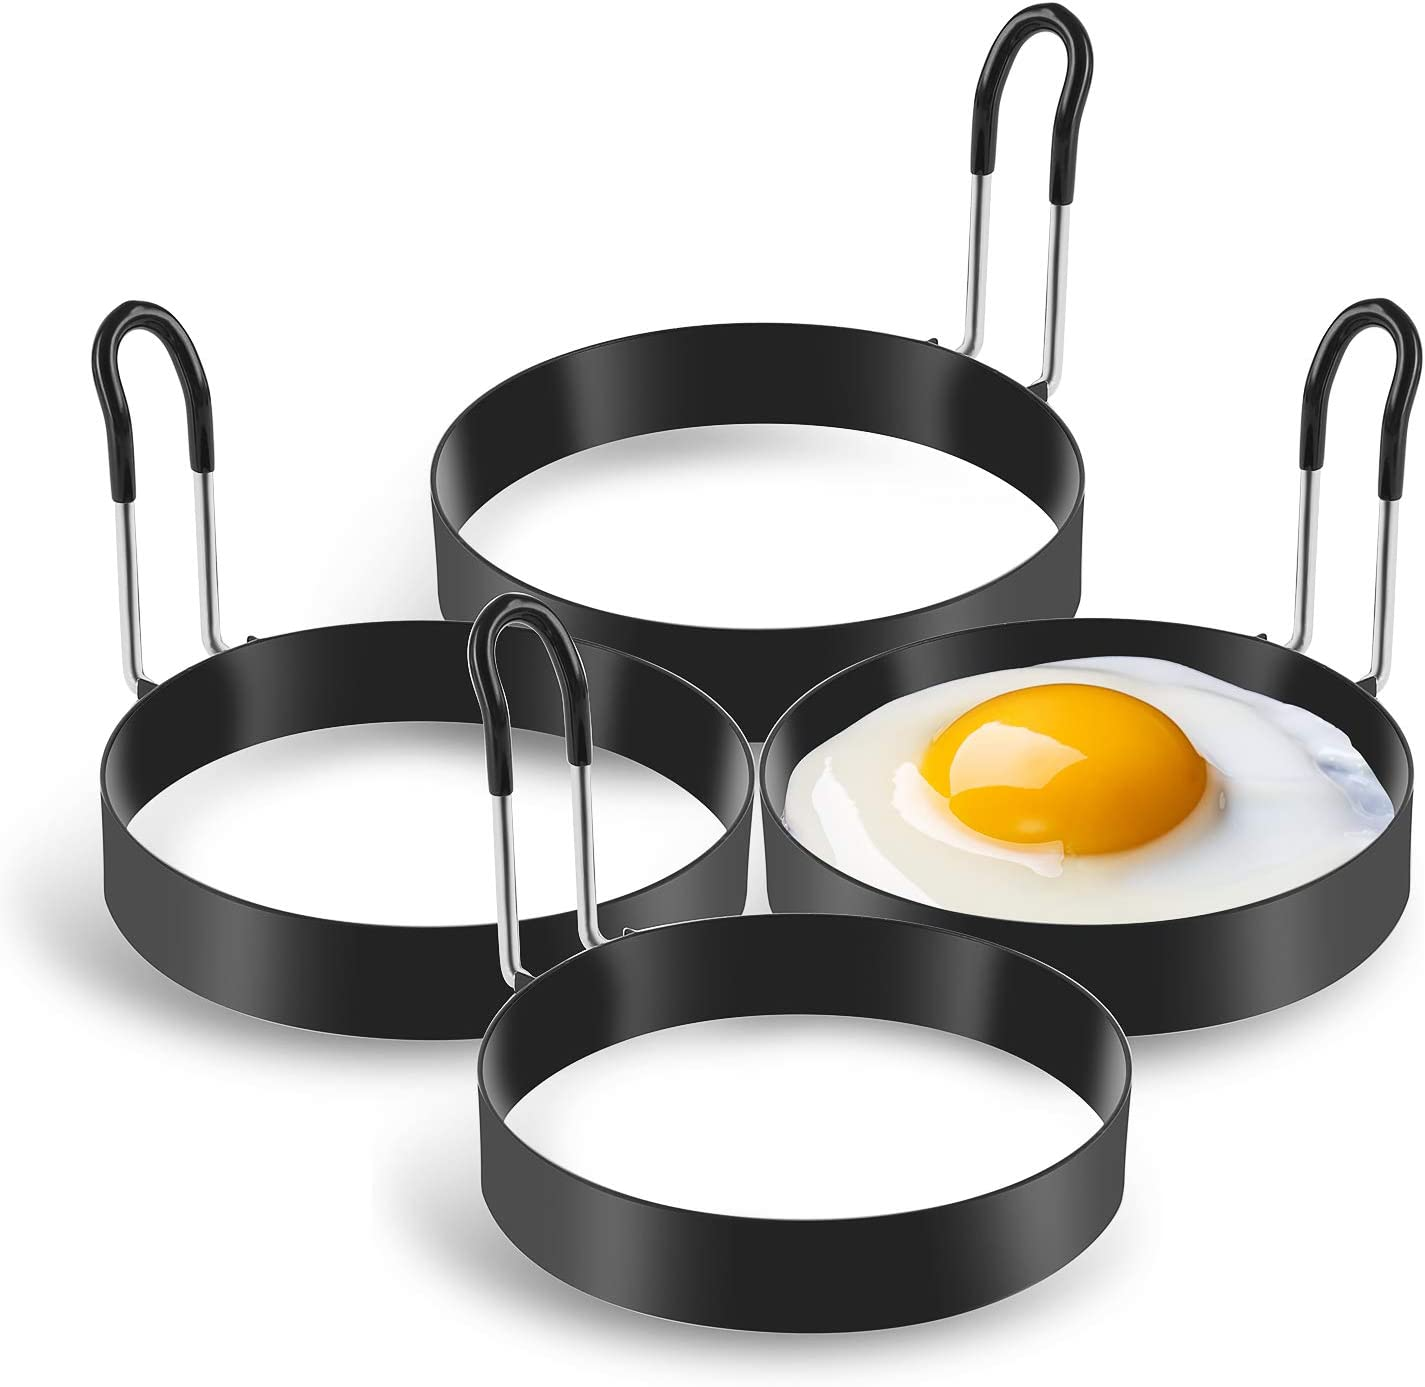 Long handle Mini Pancakes and Yorkshire Puddings Suitable 4 Pcs Round Pancake Mold Non-Stick Egg Shaper Stainless Steel Poachette Rings for Fried and Poached Eggs Crumpets Allnice Egg Rings